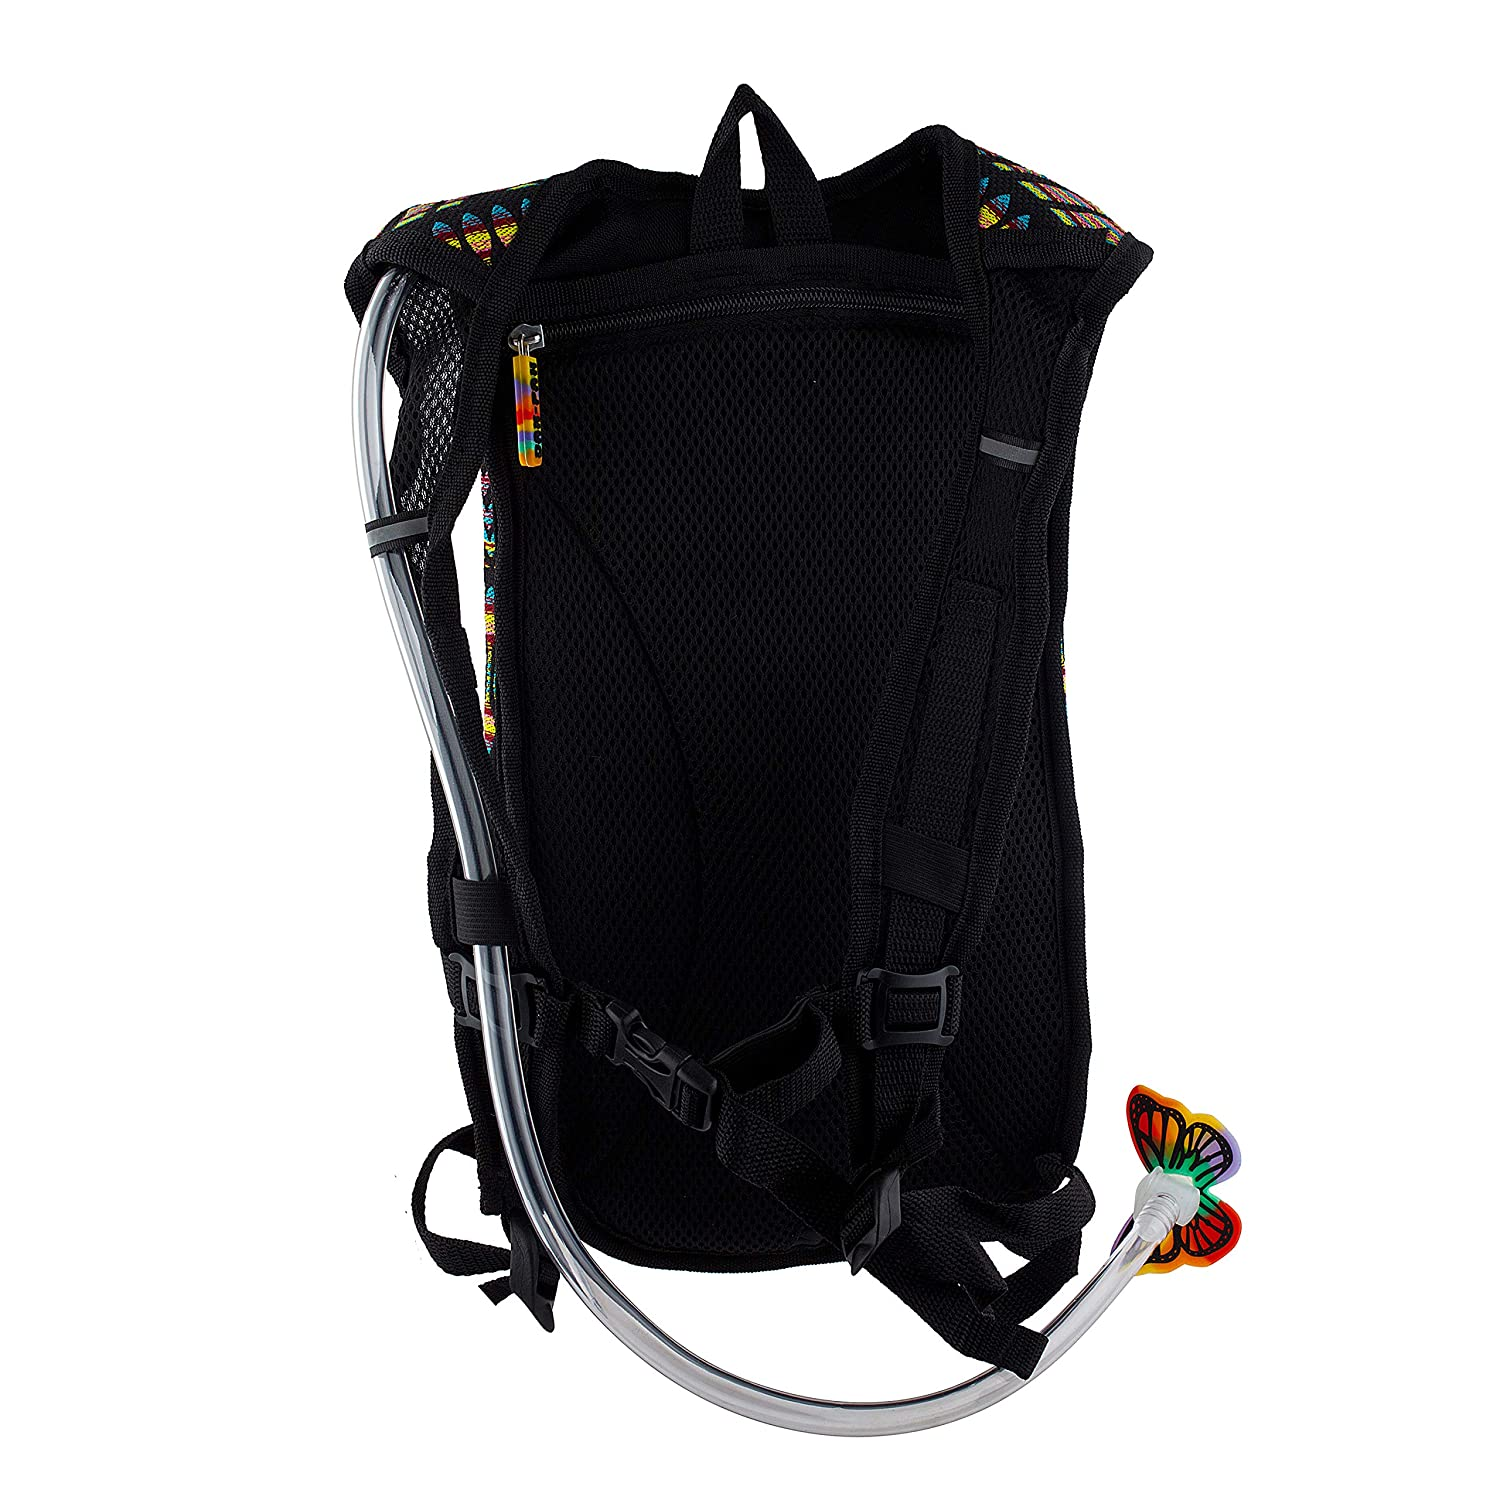 Perfect for Music Festivals and Camping Black and Rainbow Woven Tribal Design Neon Tribe Dan-Pak Rave Hydration Pack 2l Carnival Inc.